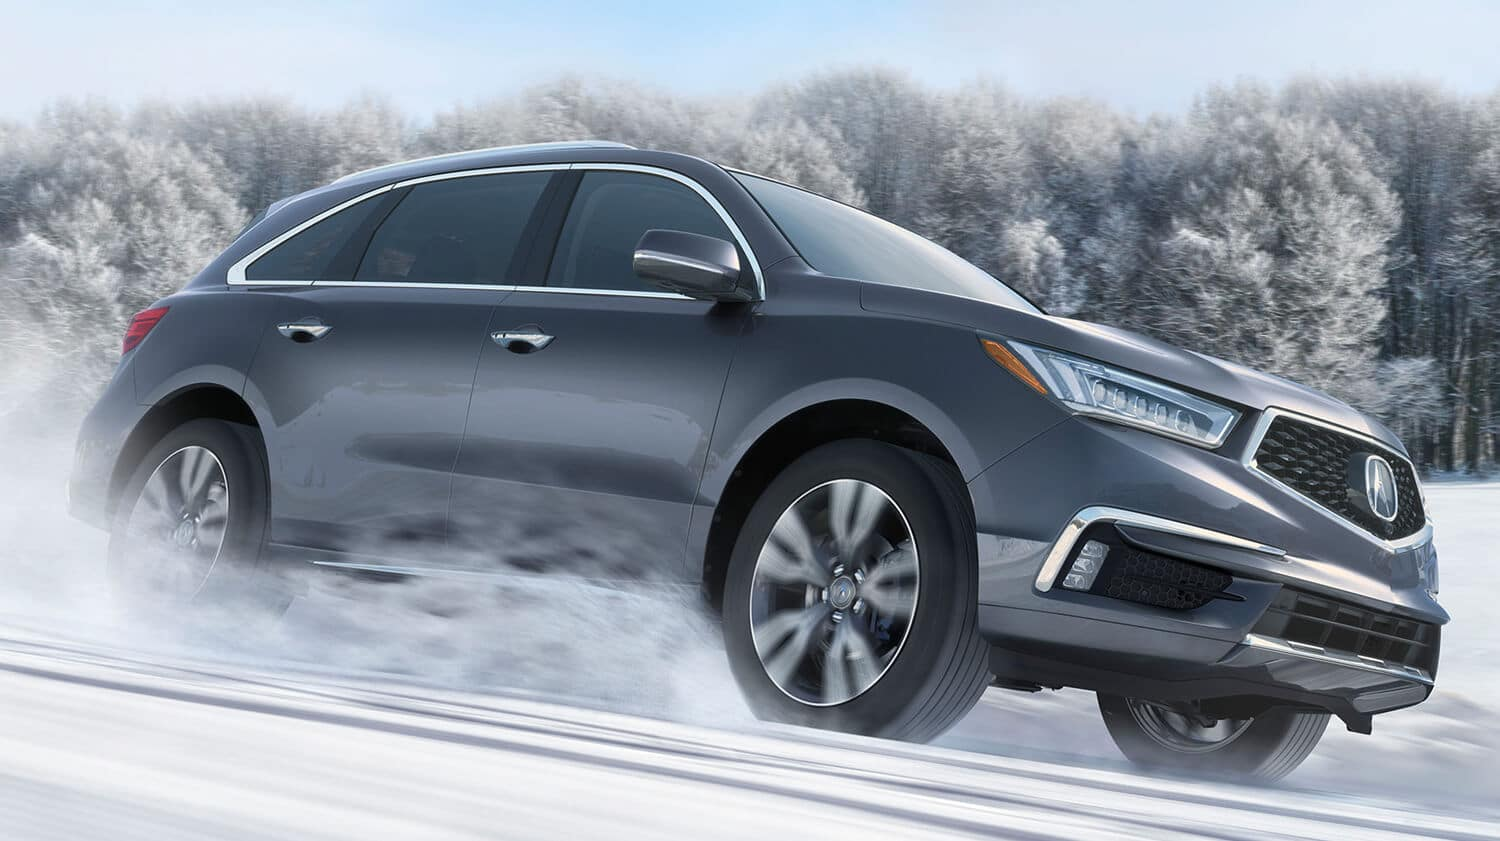 2019 Acura MDX Exterior Front Angle Passenger Side Snow